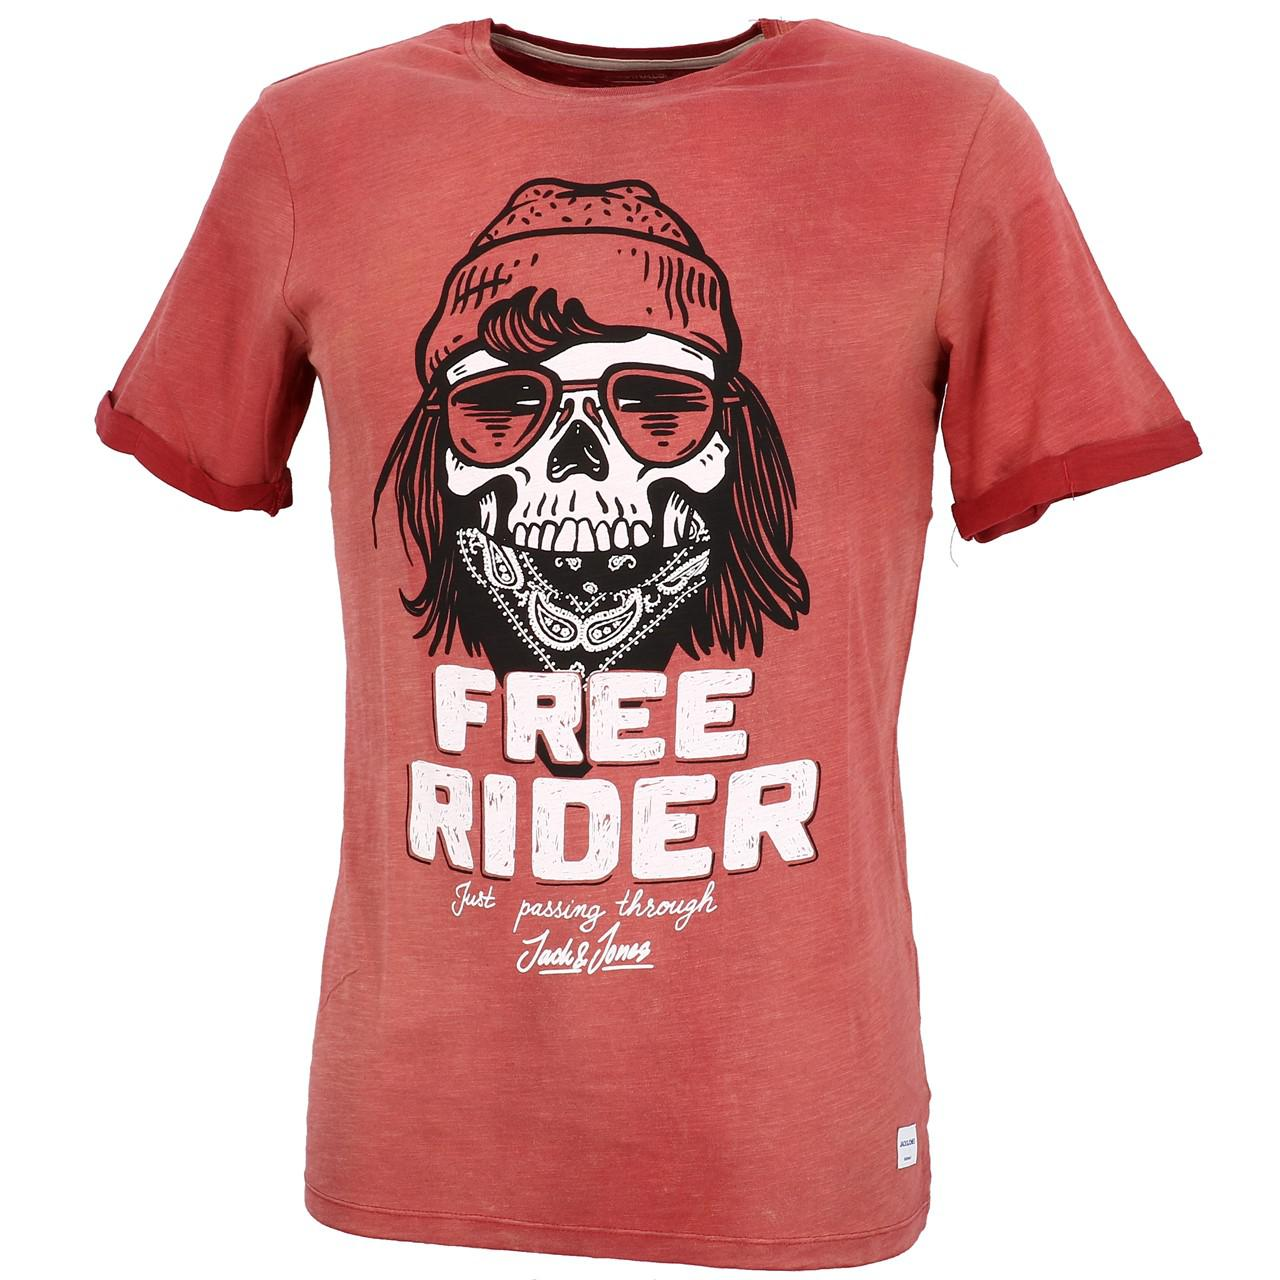 Short-Sleeve-T-Shirt-Jack-and-Jones-Craps-Brick-Red-Mc-Tee-Red-28384-Does-Not